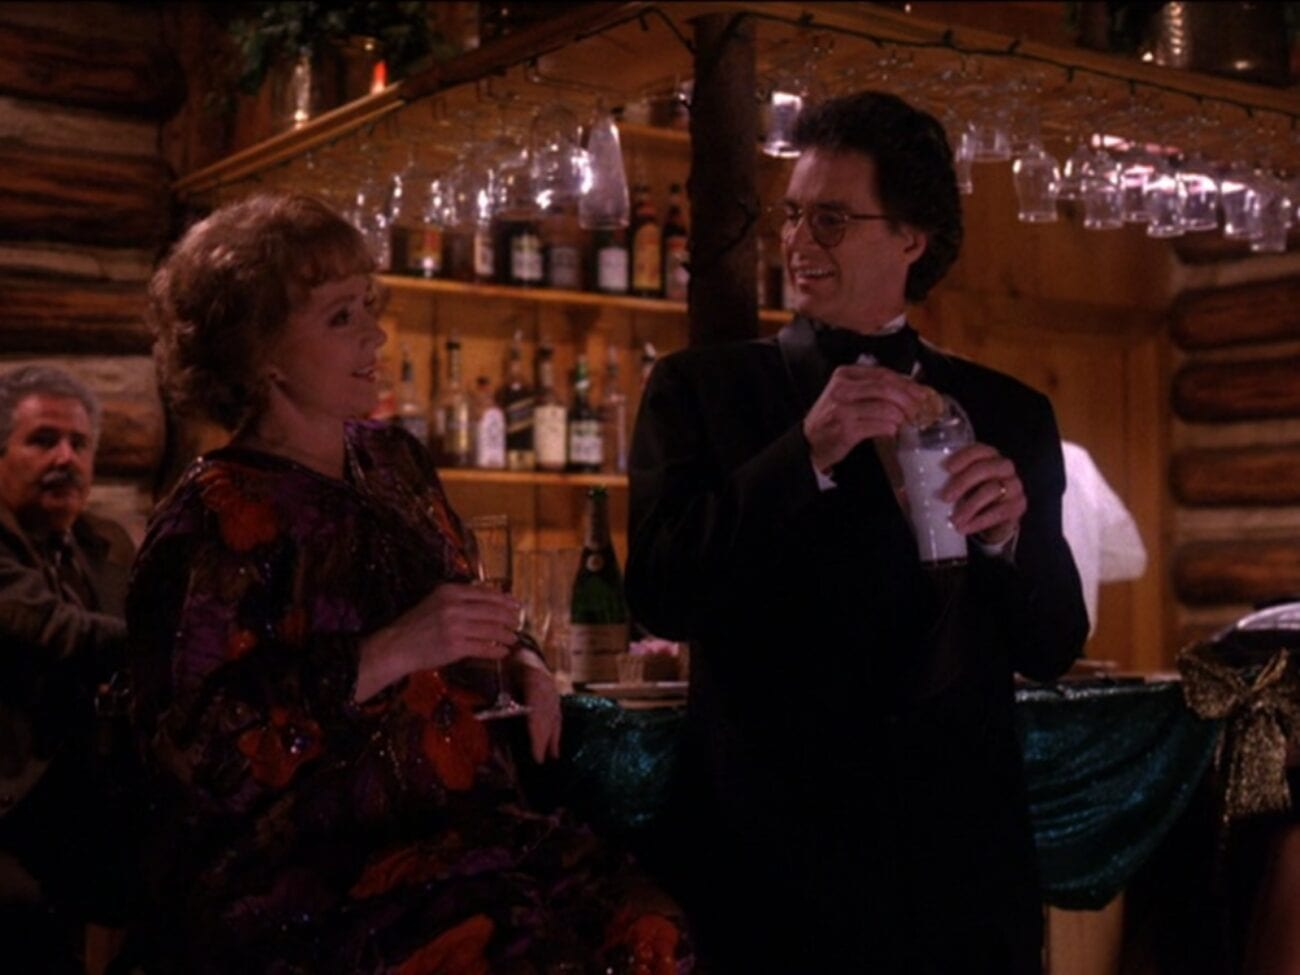 Catherine seated at a bar talking to Ben, standing and dipping a cookie in a glass of milk